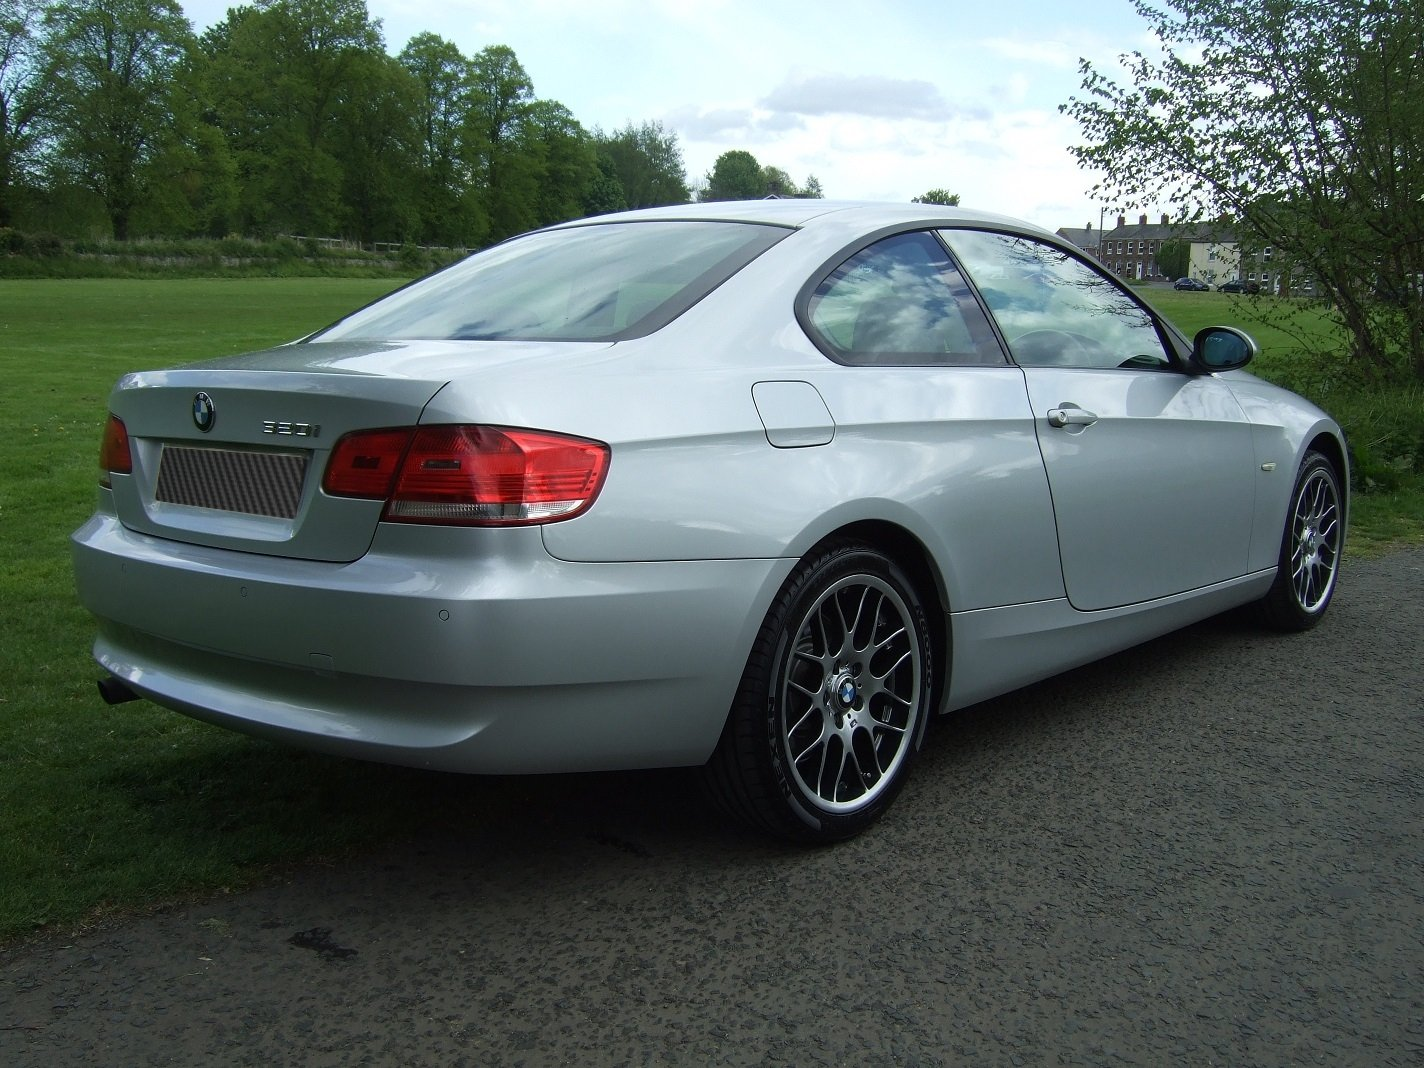 2008 BMW 320i SE Petrol For Sale (picture 4 of 6)